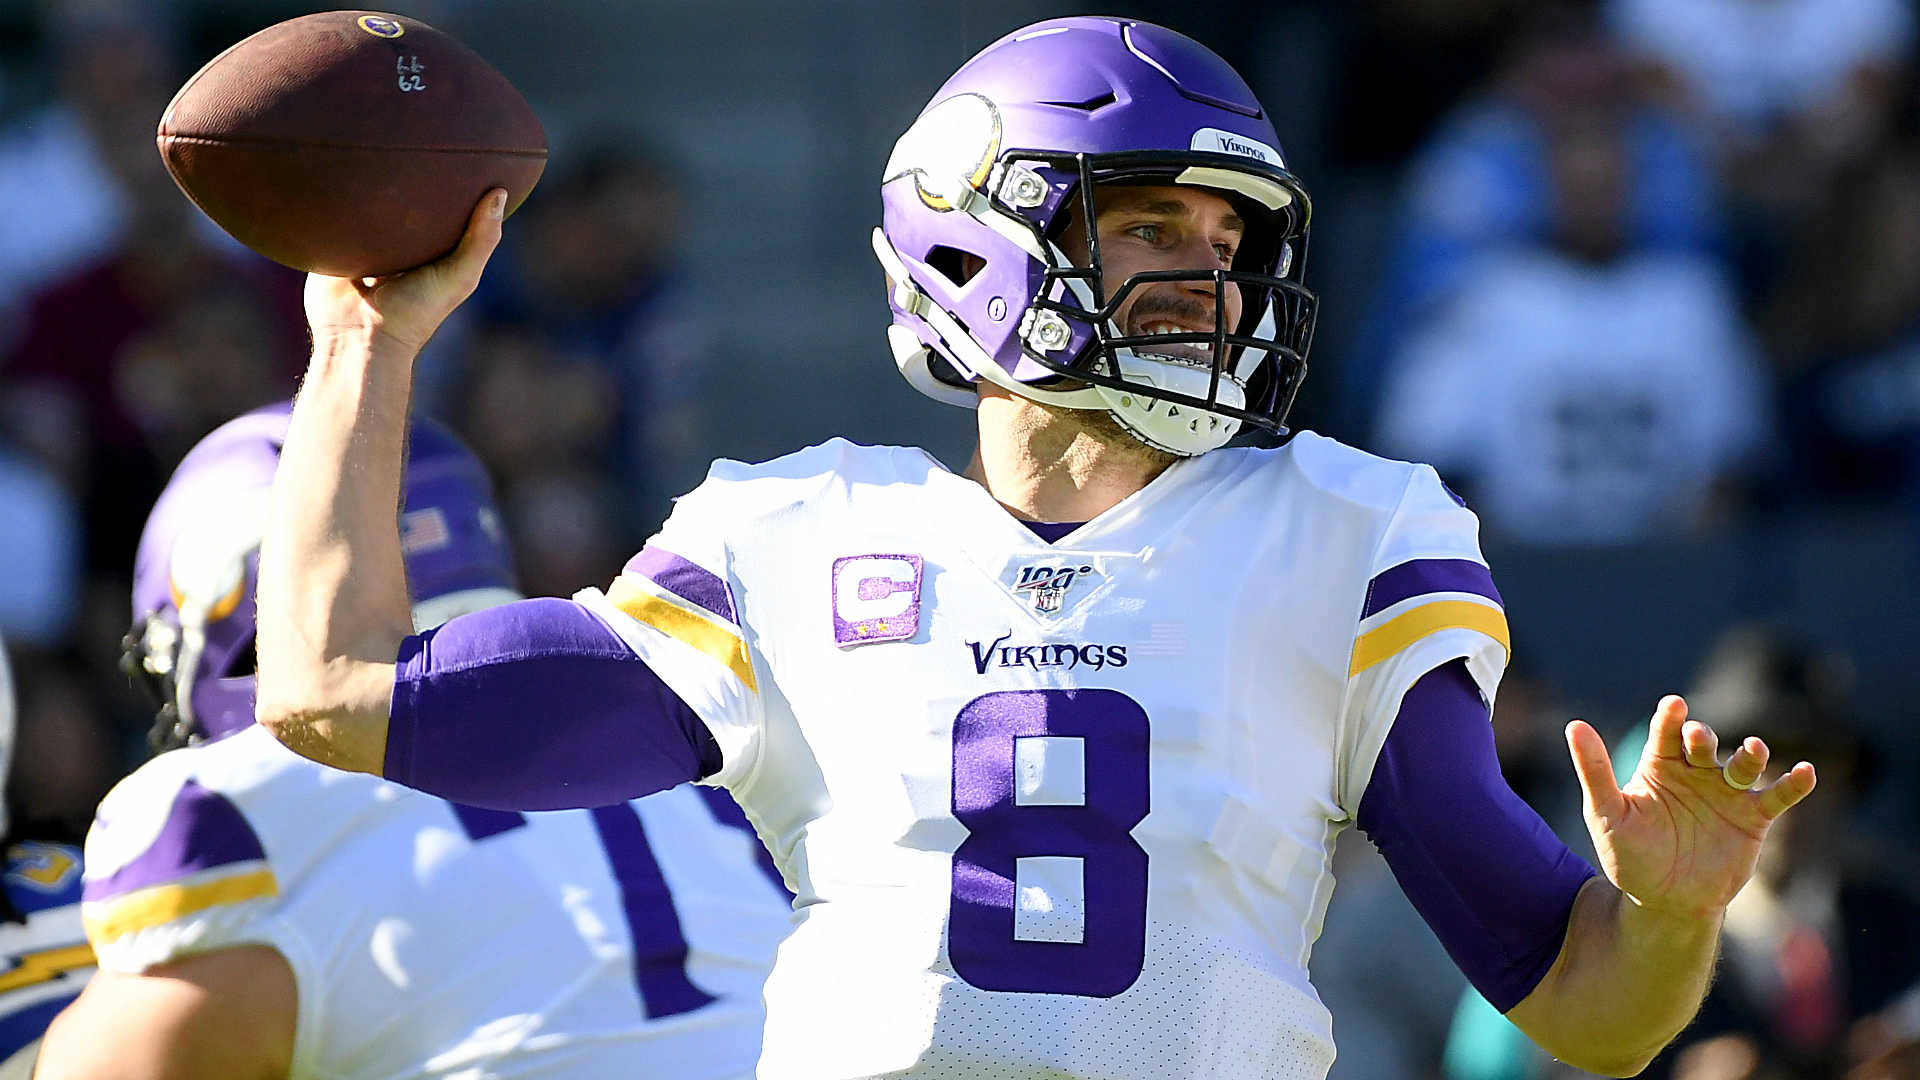 NFL playoff picture: How Vikings can earn wild card over Rams, win NFC North over Packers